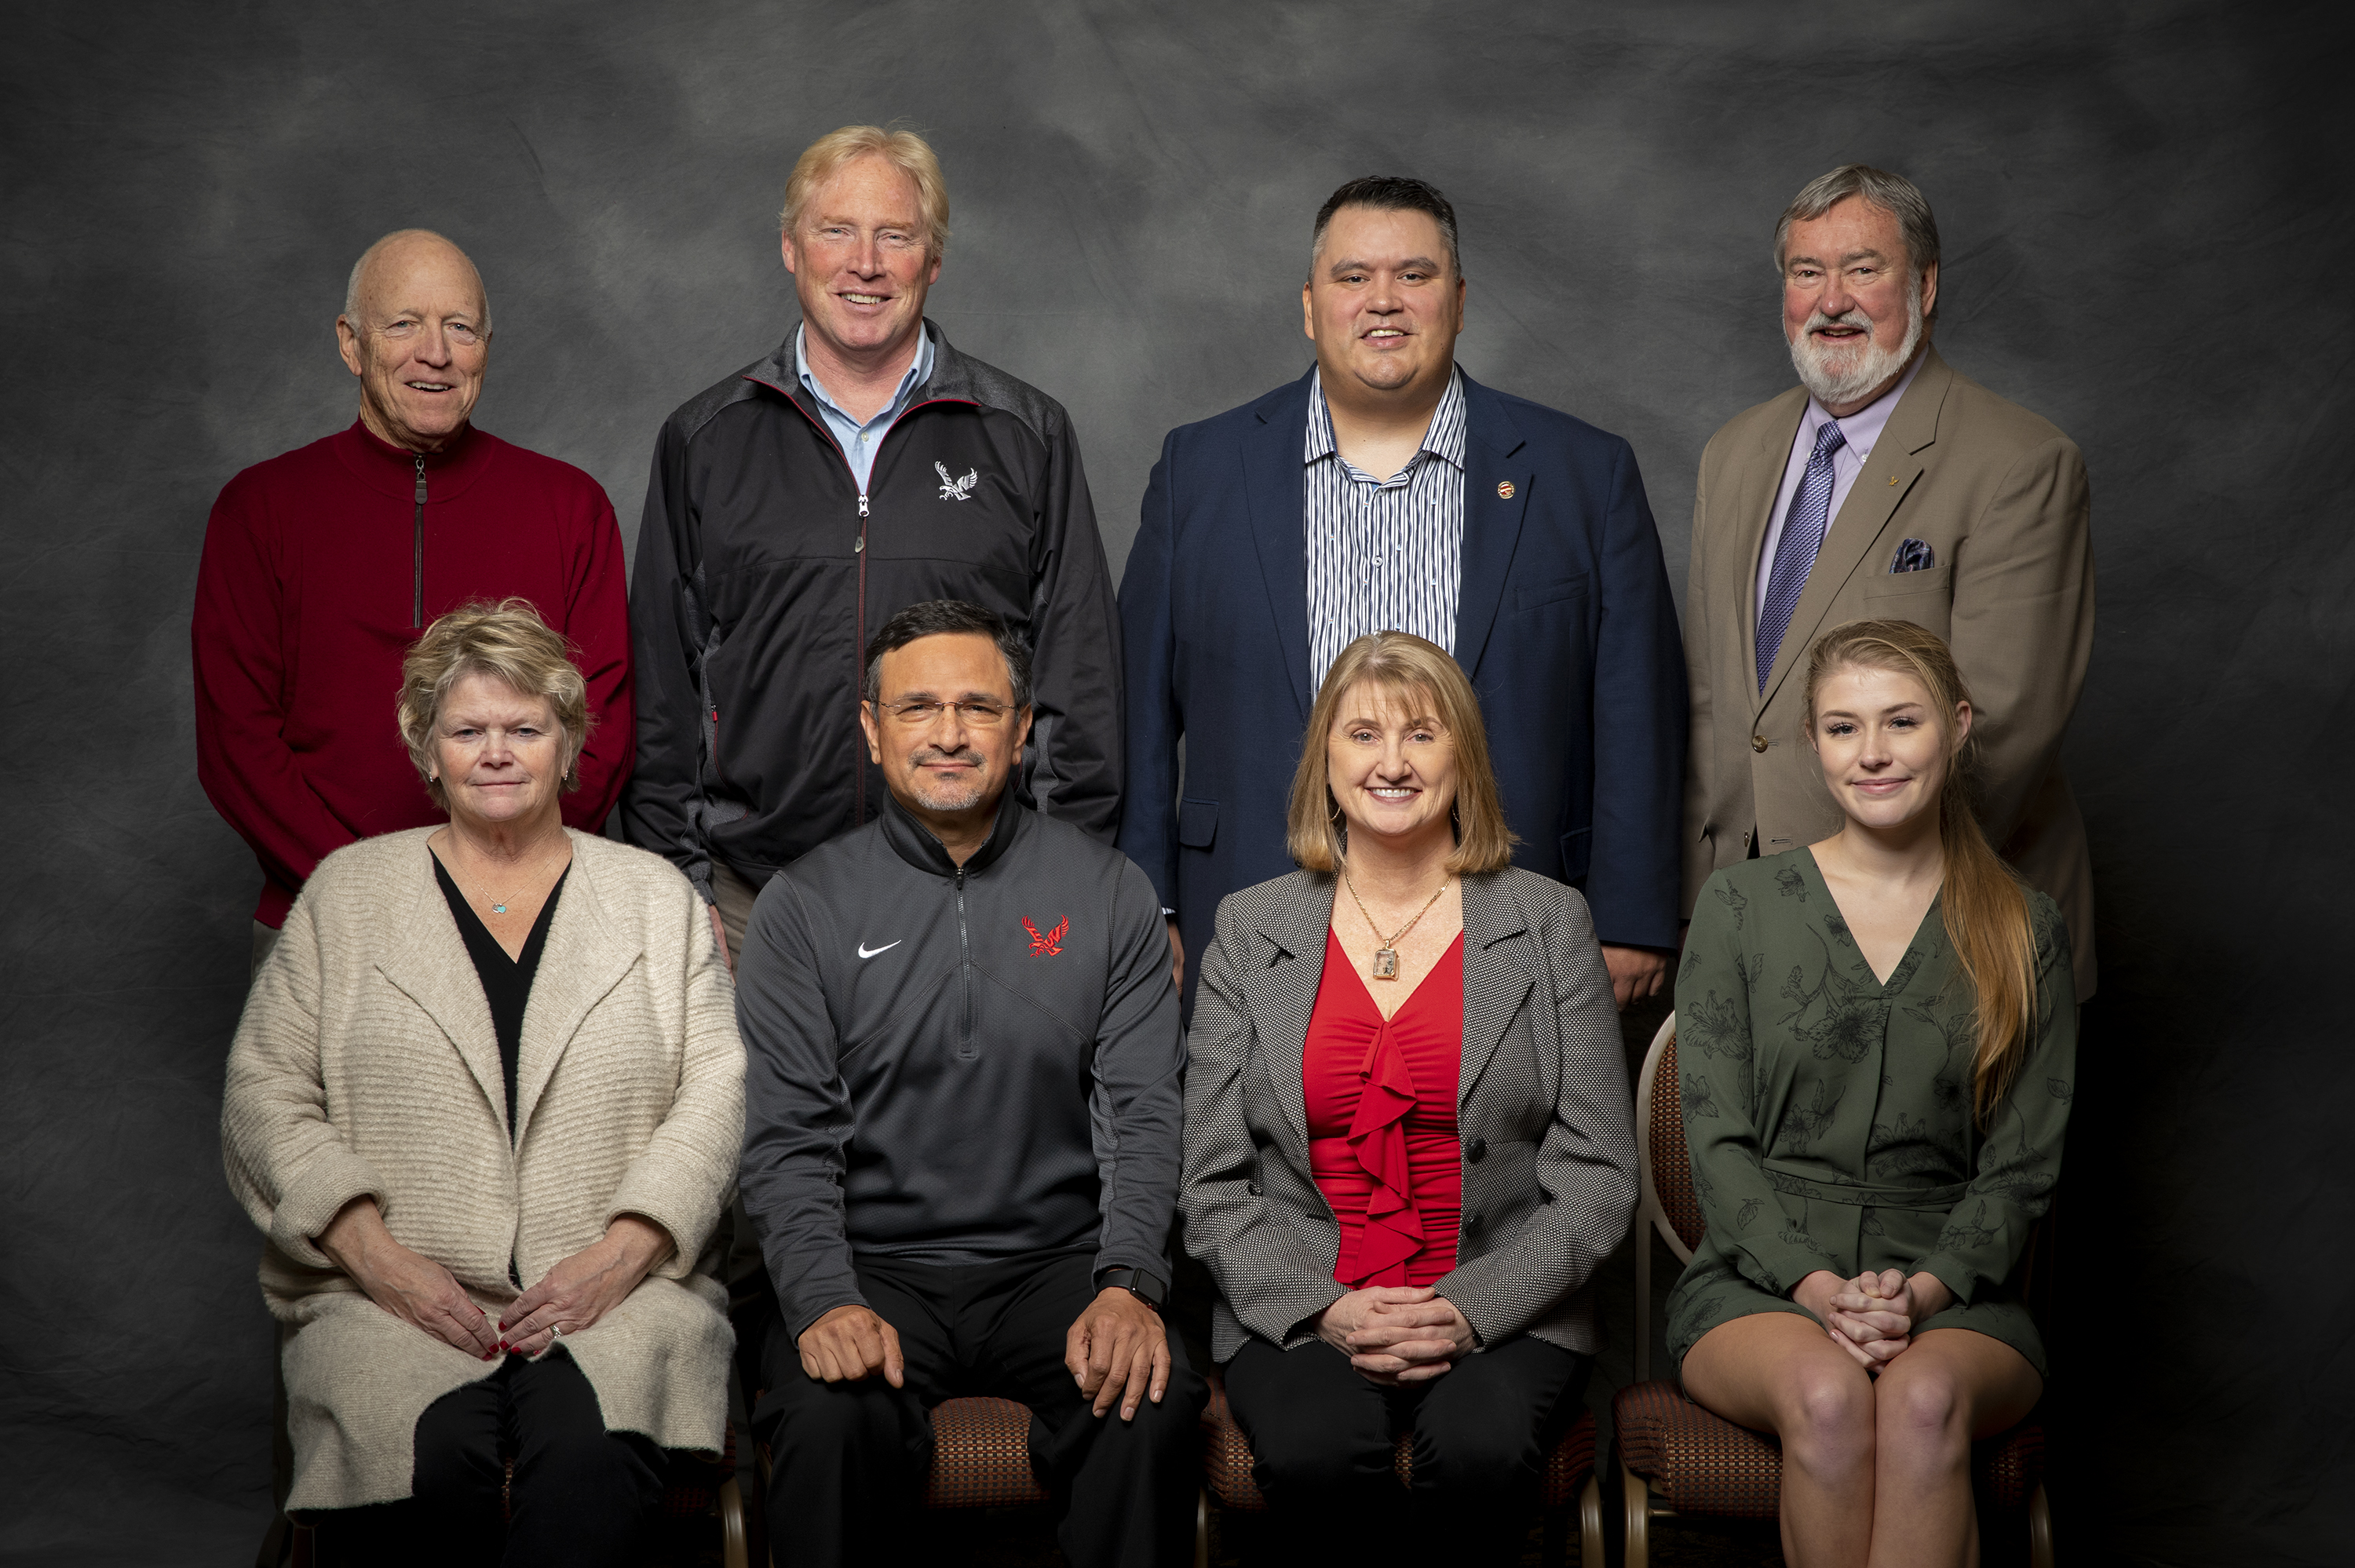 Group photo of the Board members